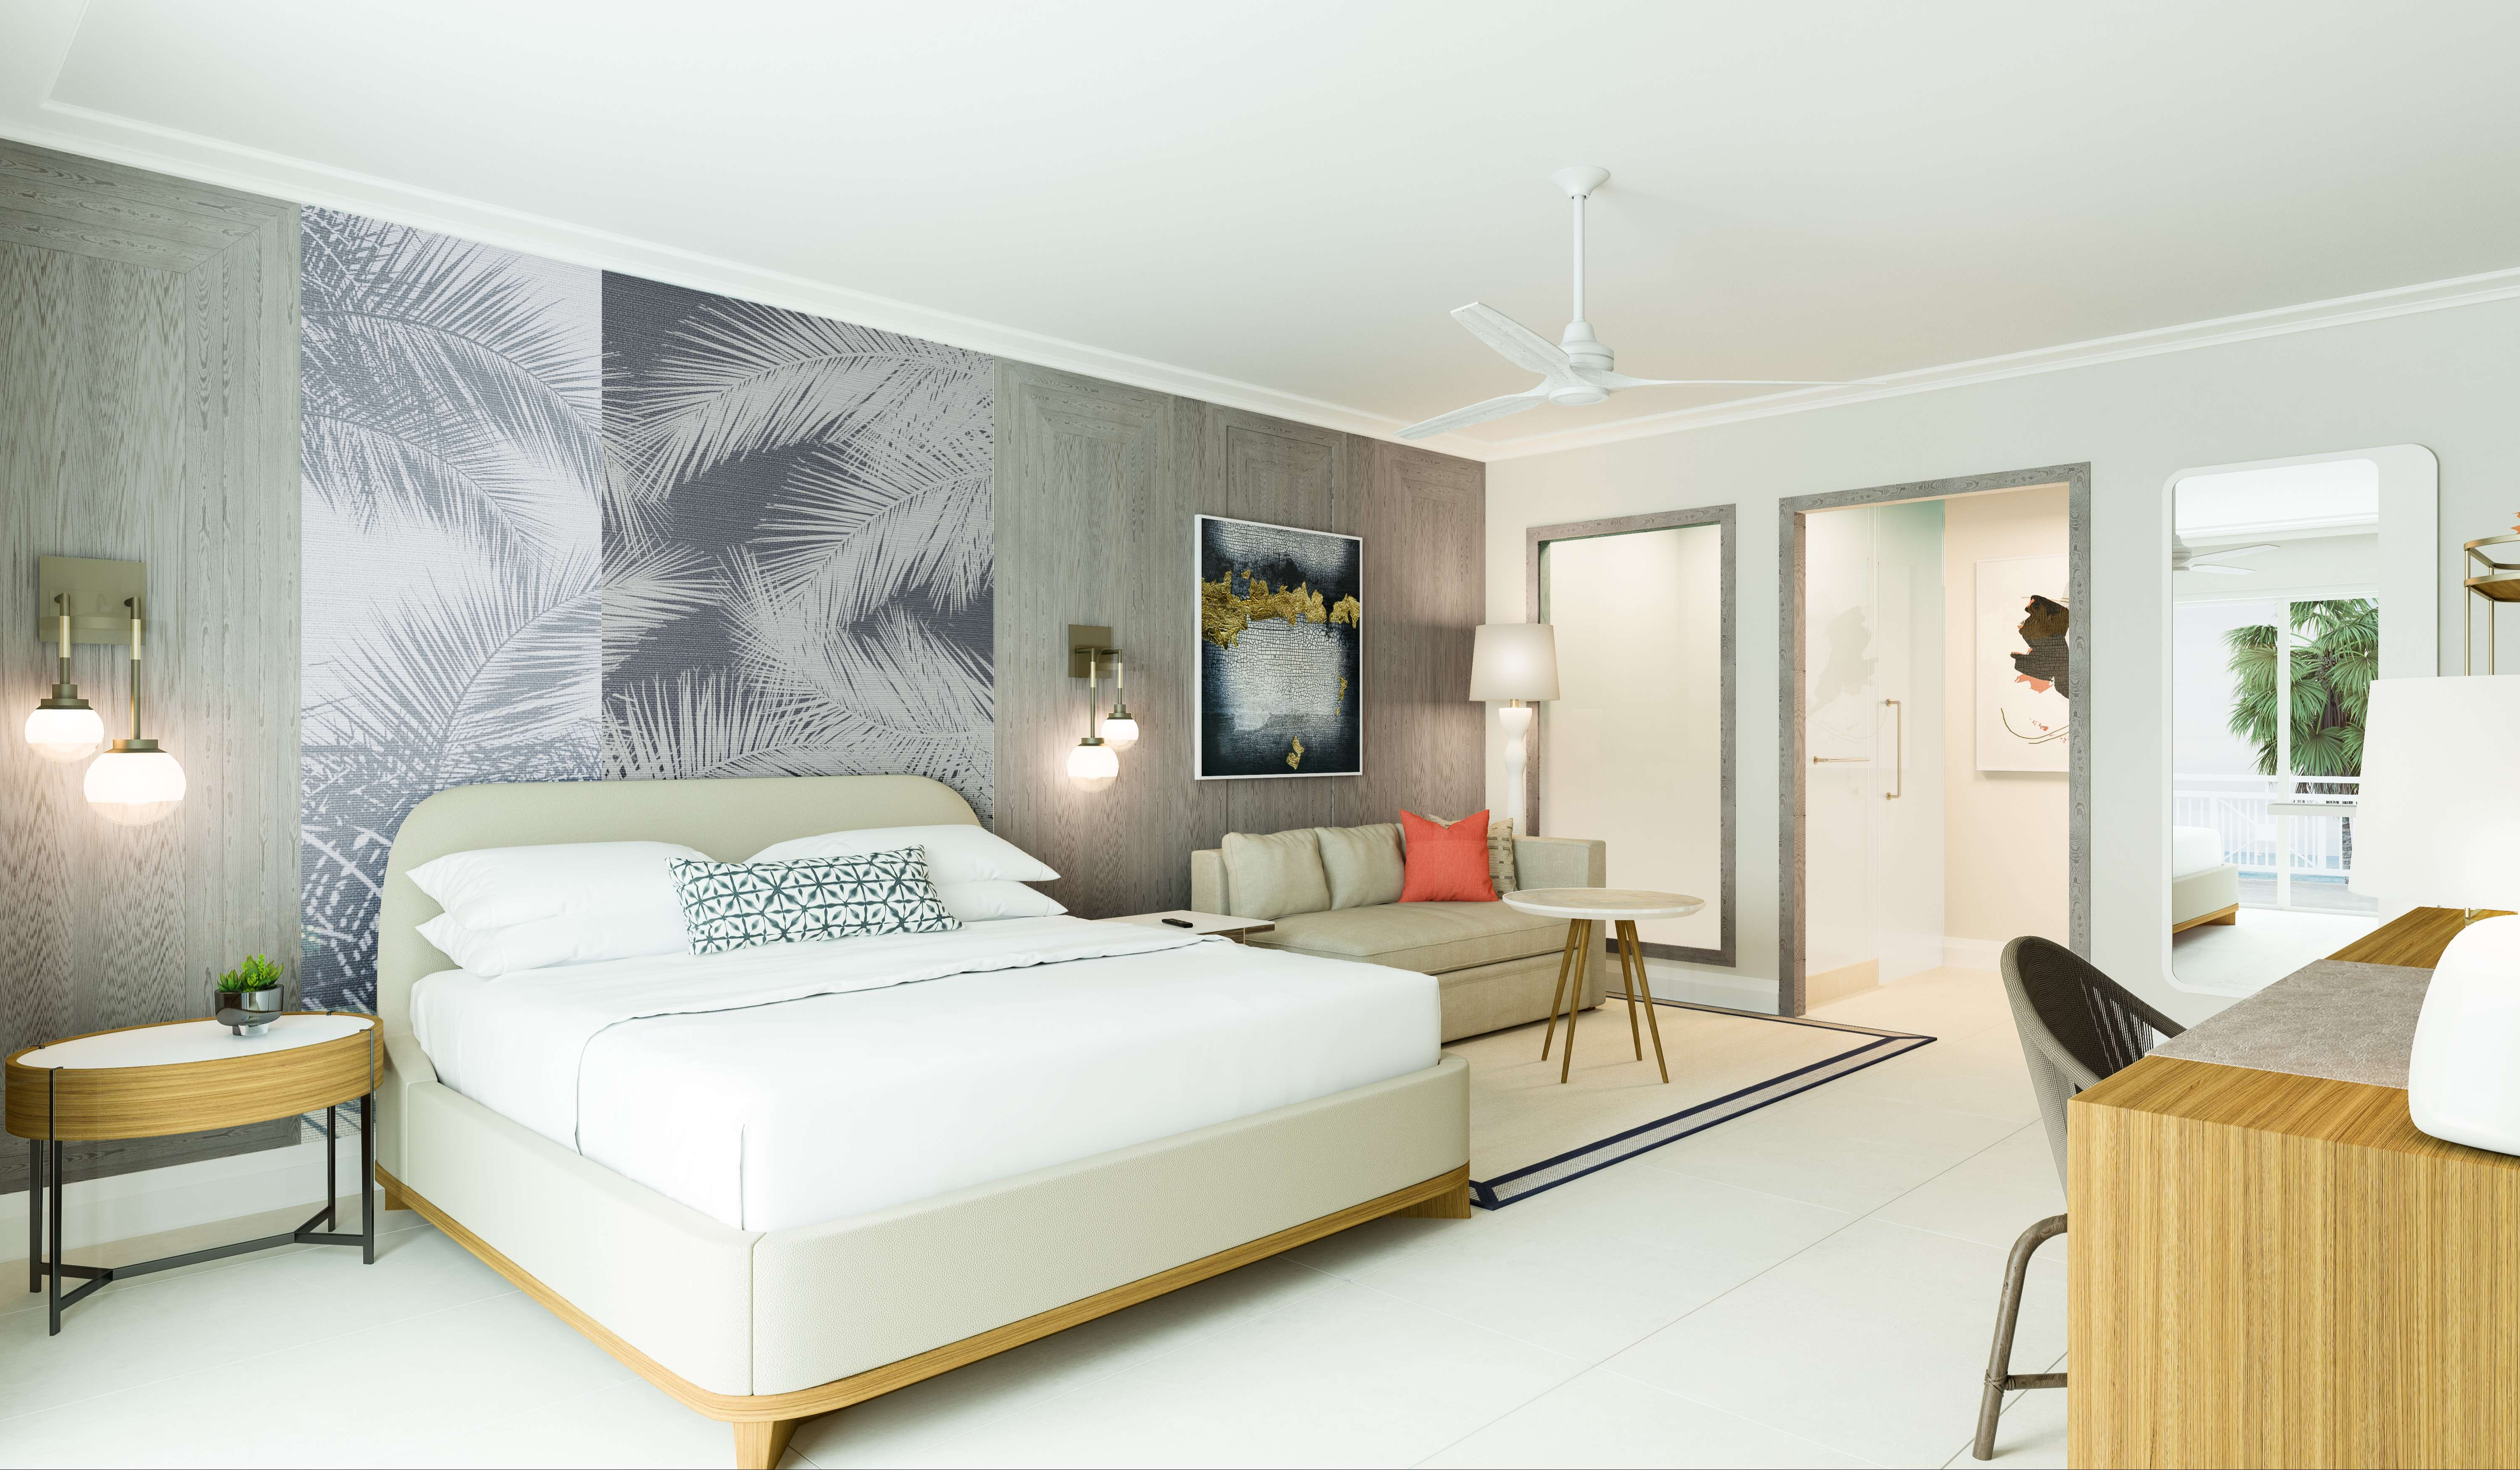 A large one bedroom suite at Noni Beach Resort in St. Thomas